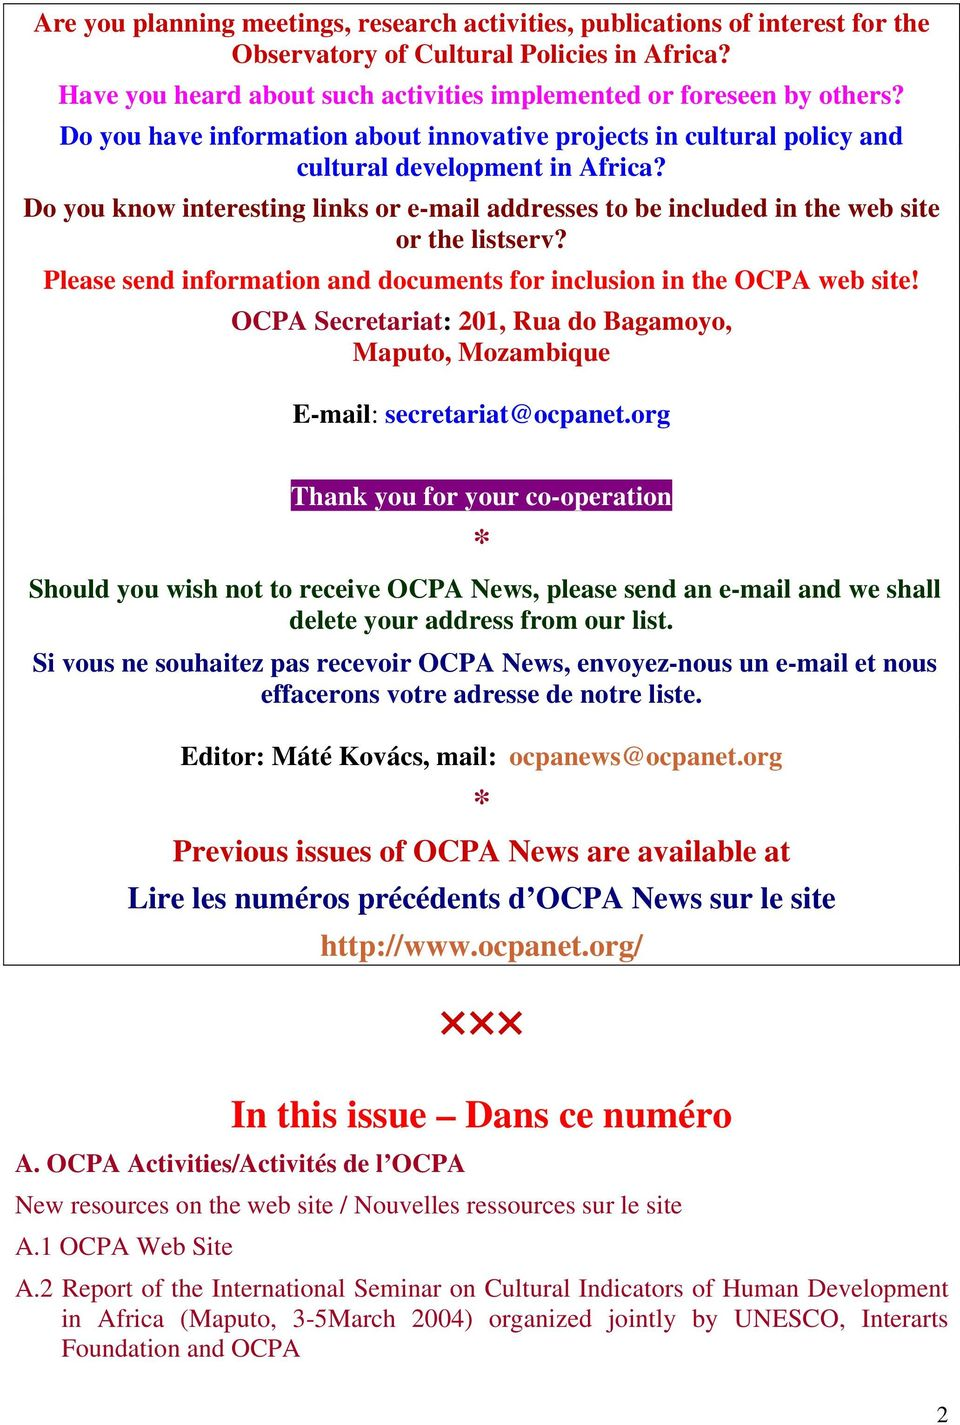 Do you know interesting links or e-mail addresses to be included in the web site or the listserv? Please send information and documents for inclusion in the OCPA web site!